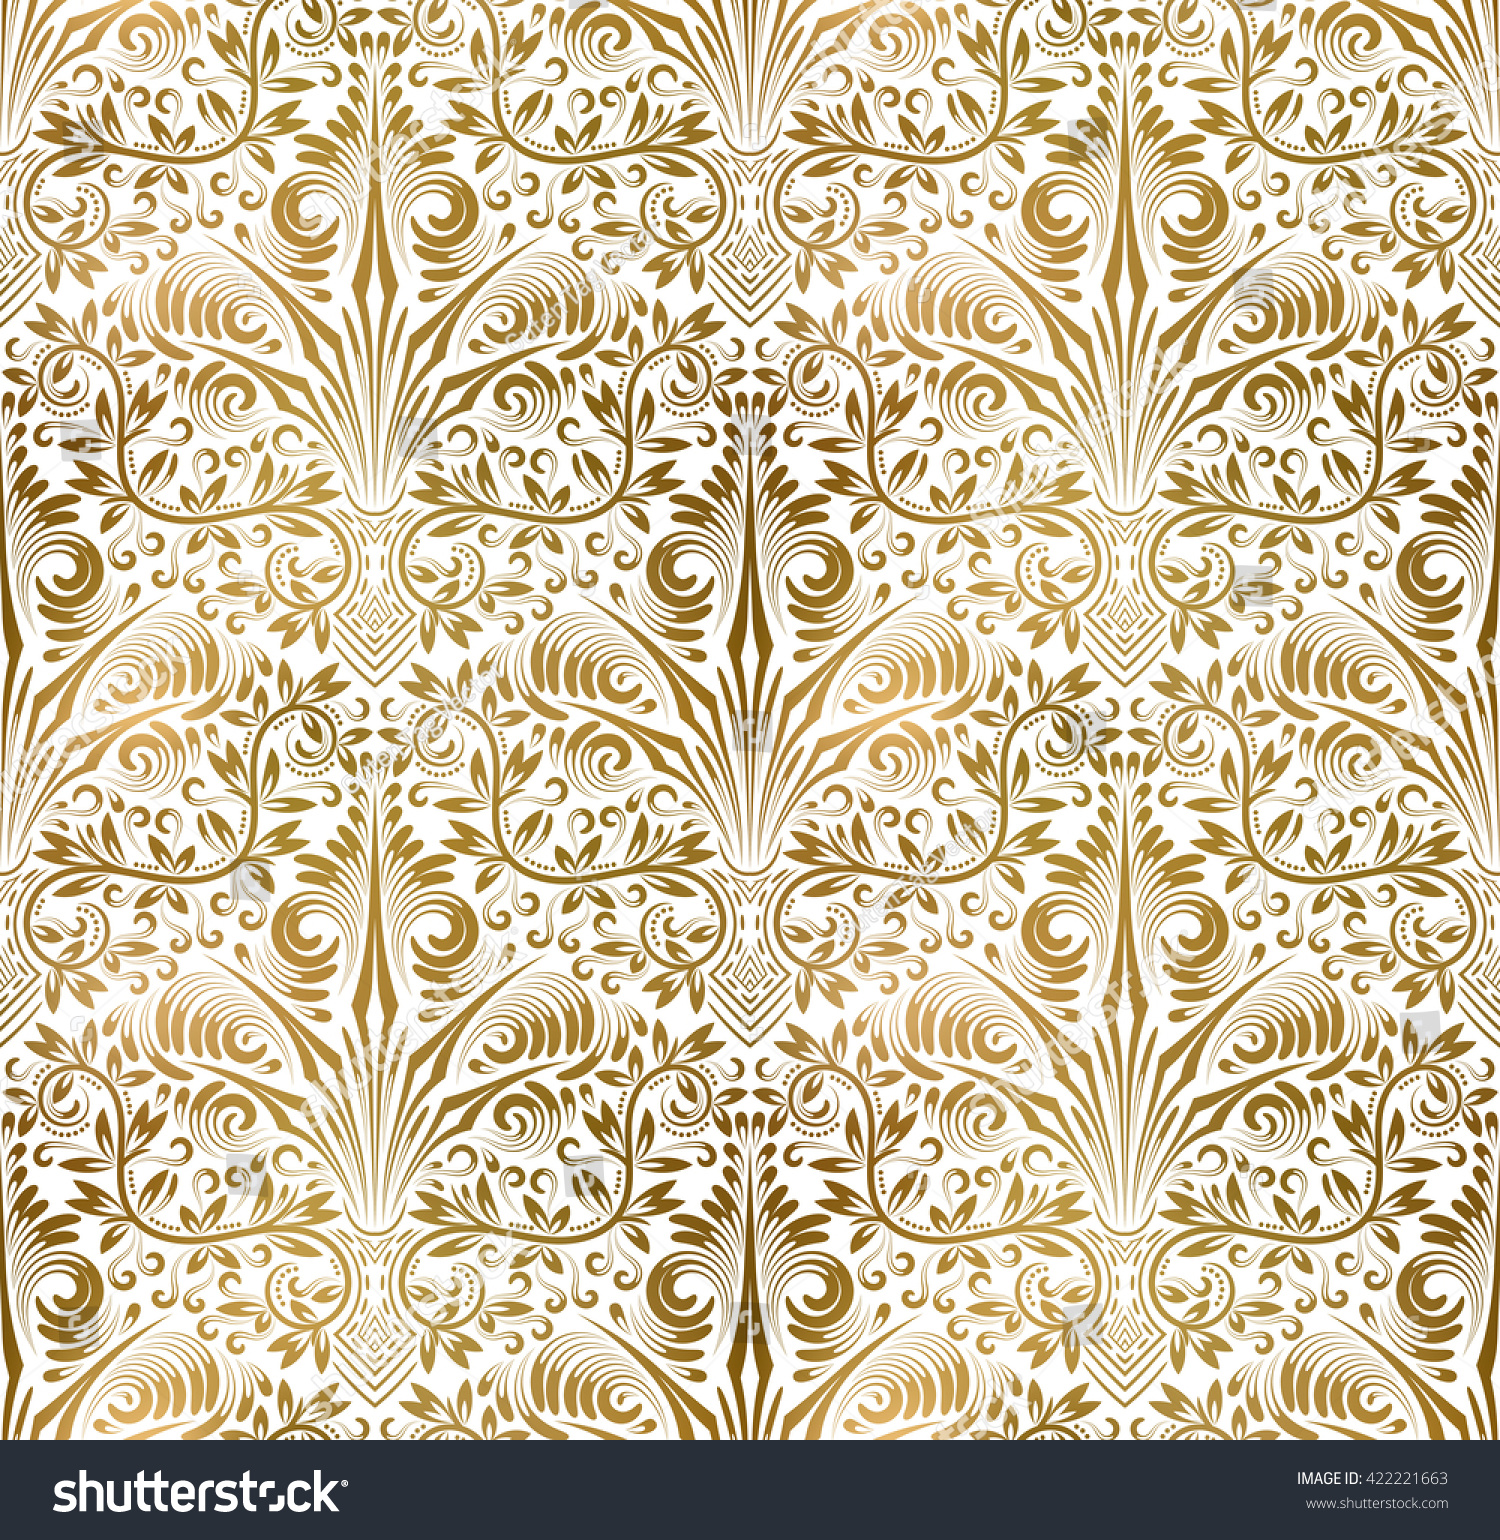 Gold and white pattern background